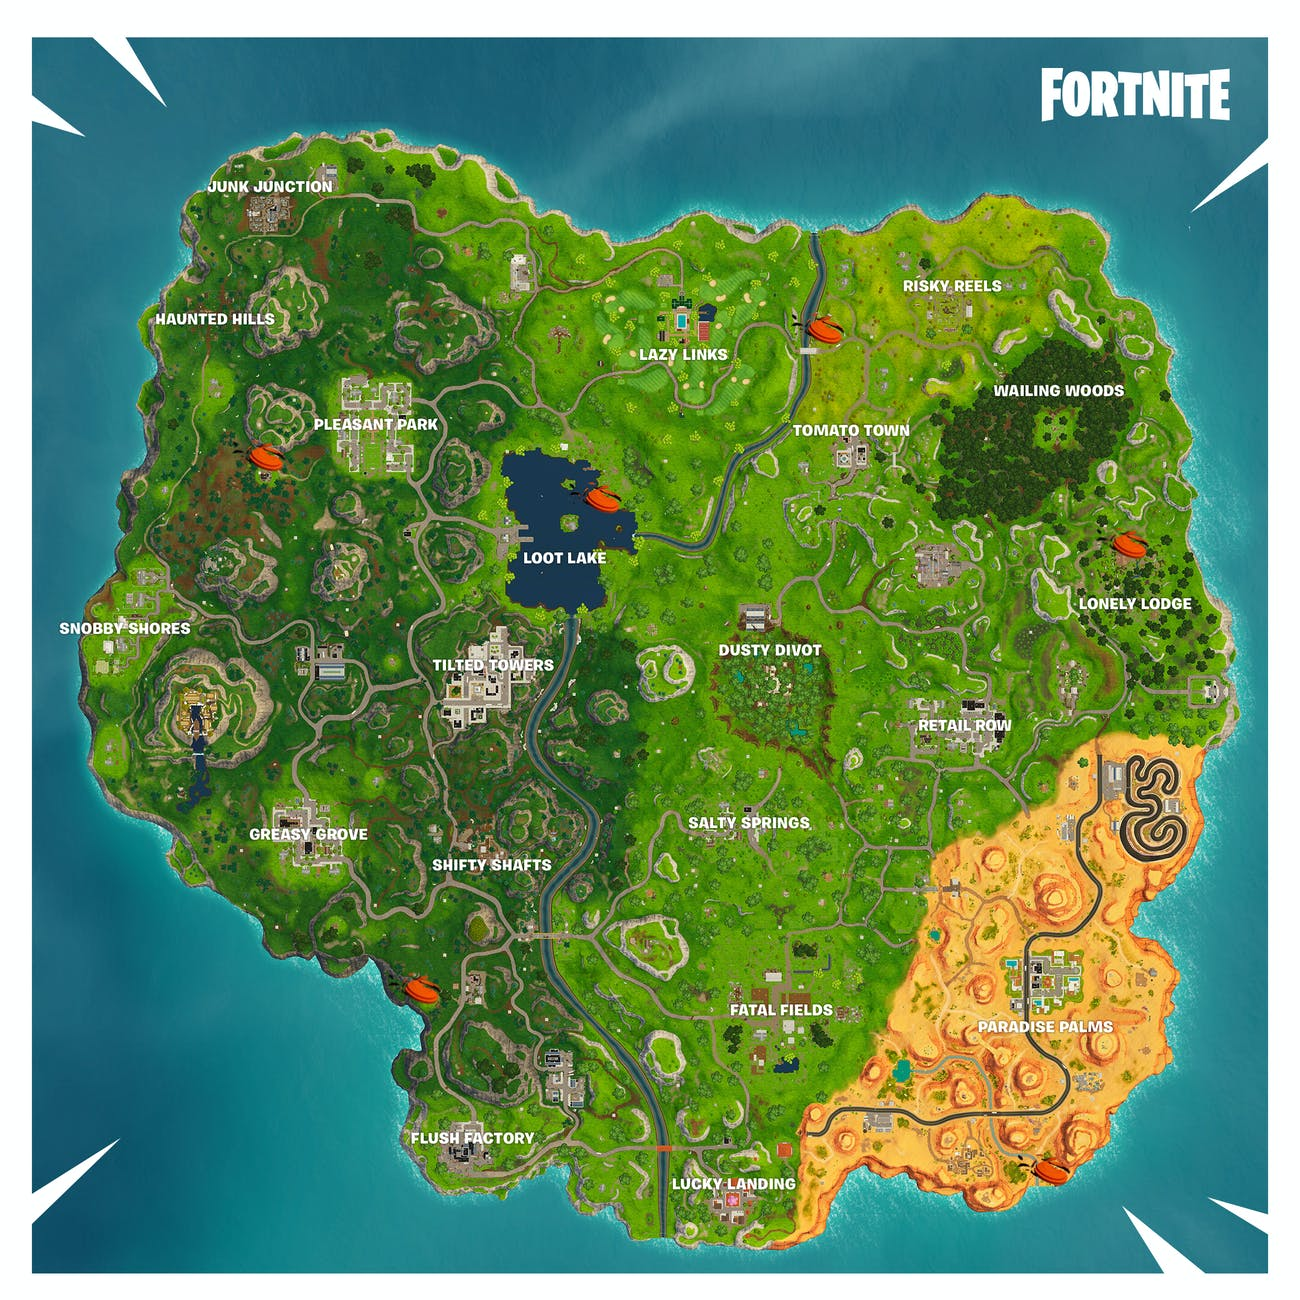 'Fortnite' Where to Shoot Clay Pigeons